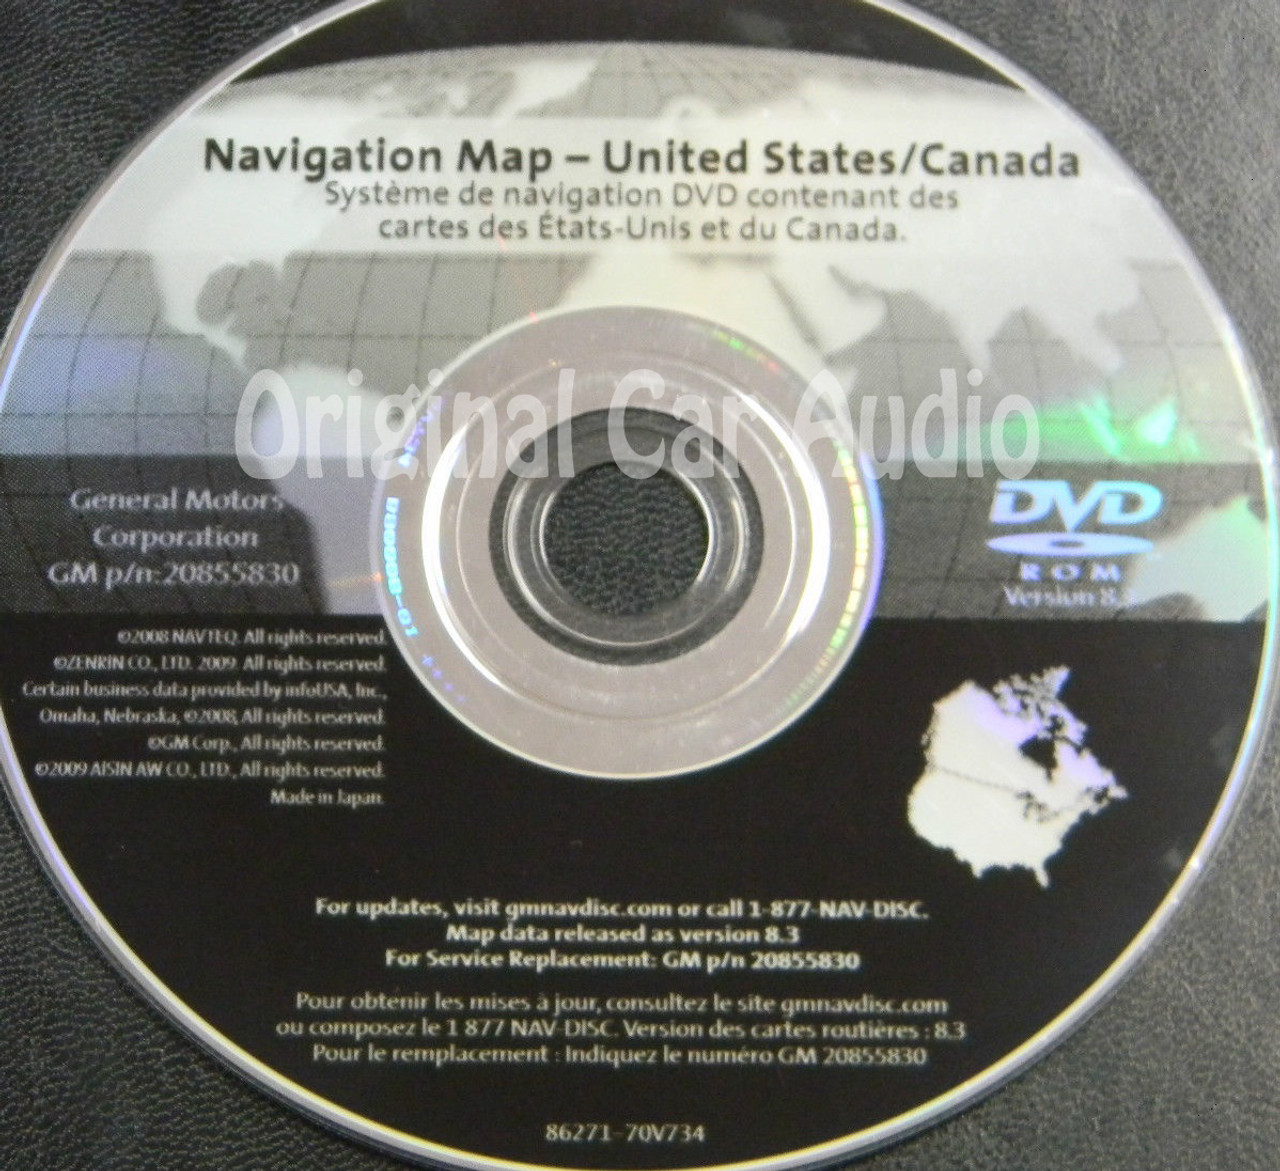 GM Satellite Navigation System CD 20855830 Version 8.3 - CD4Car